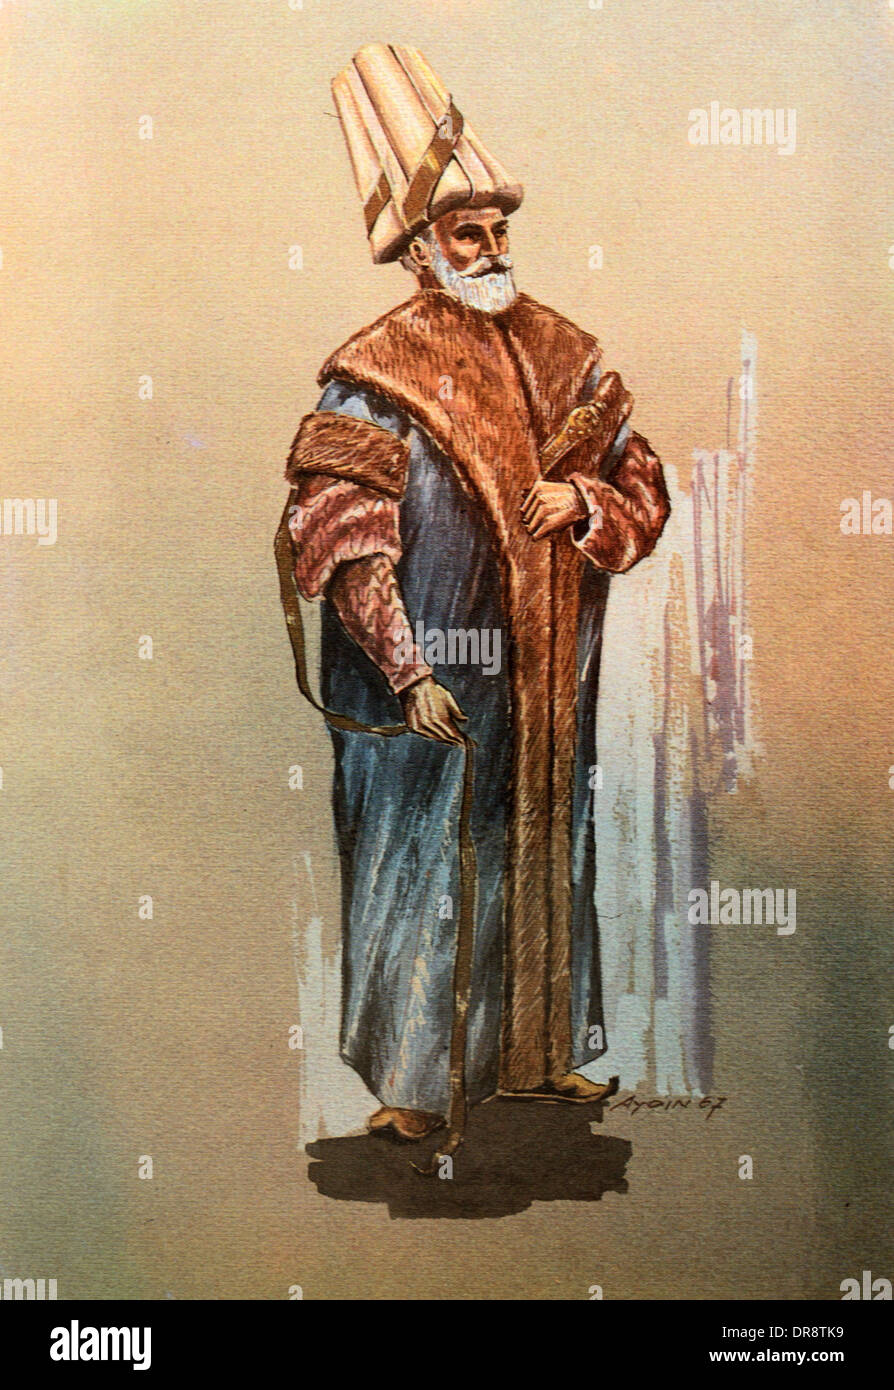 Grand Vizier Ottoman Turkish Official during Ottoman Empire - Stock Image